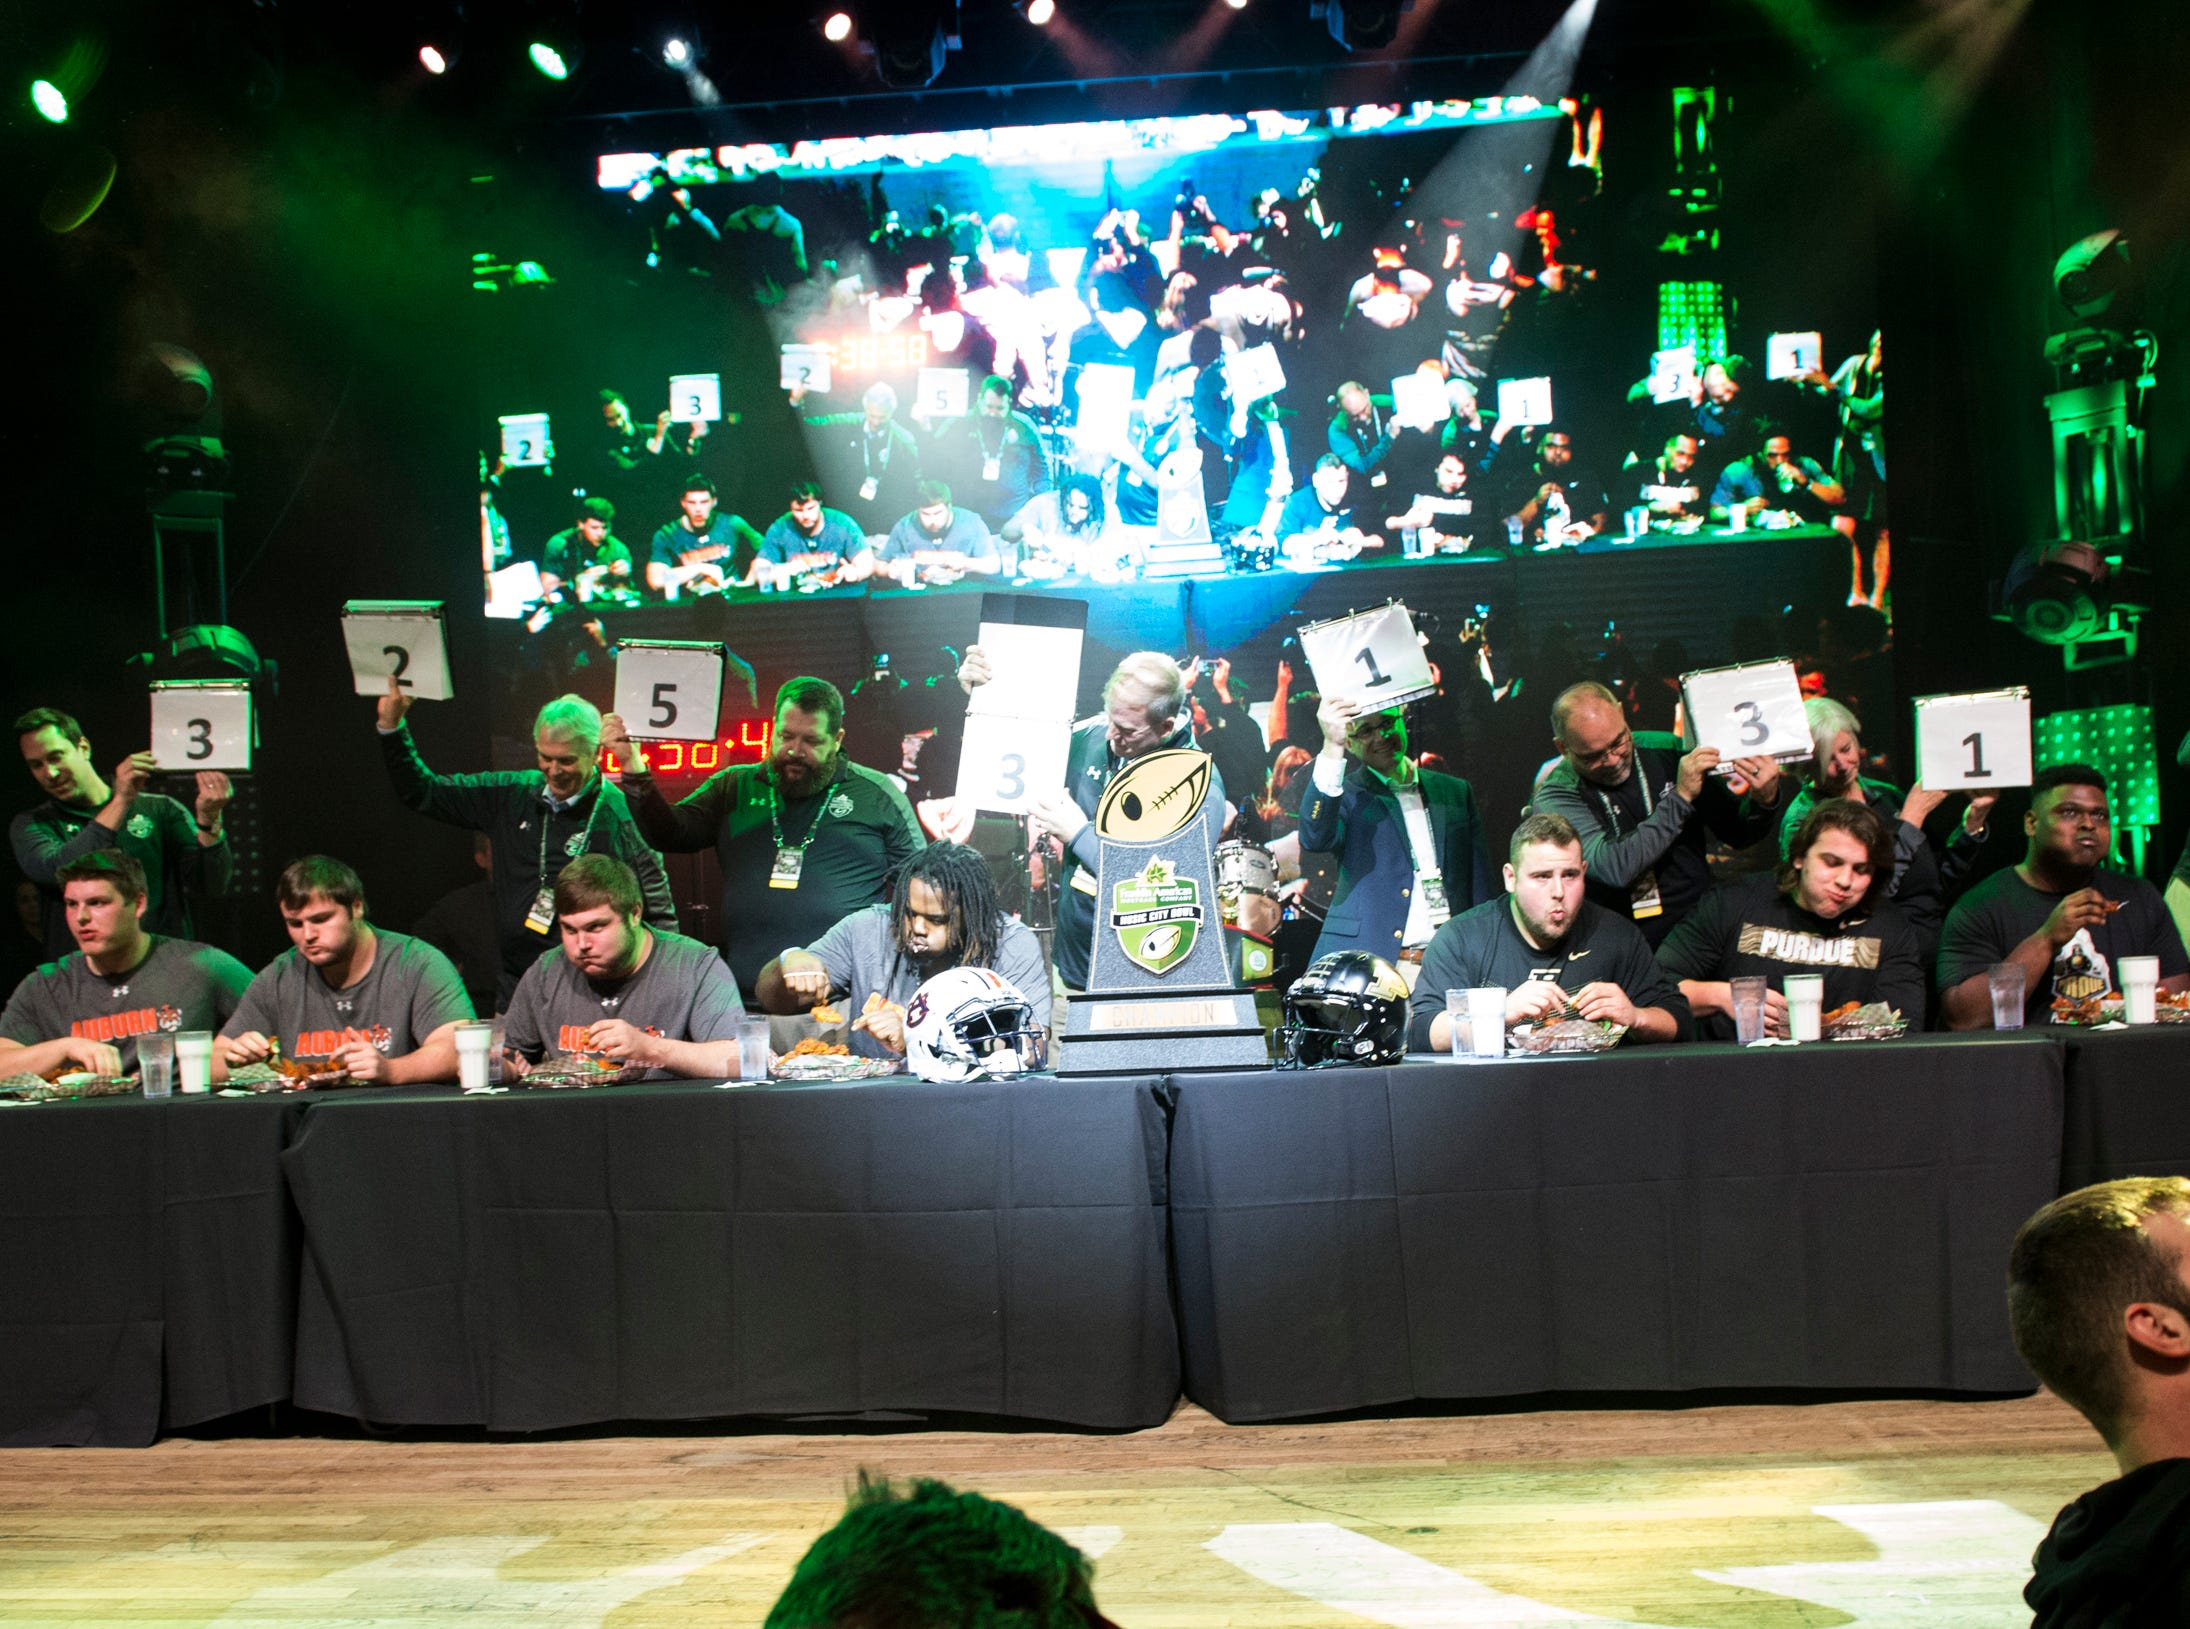 Auburn and Purdue players compete in a hot chicken eating competition at Wild Horse Saloon in Nashville, Ten., on Wednesday, Dec. 26, 2018. Auburn takes on Purdue in the Music City Bowl Friday.